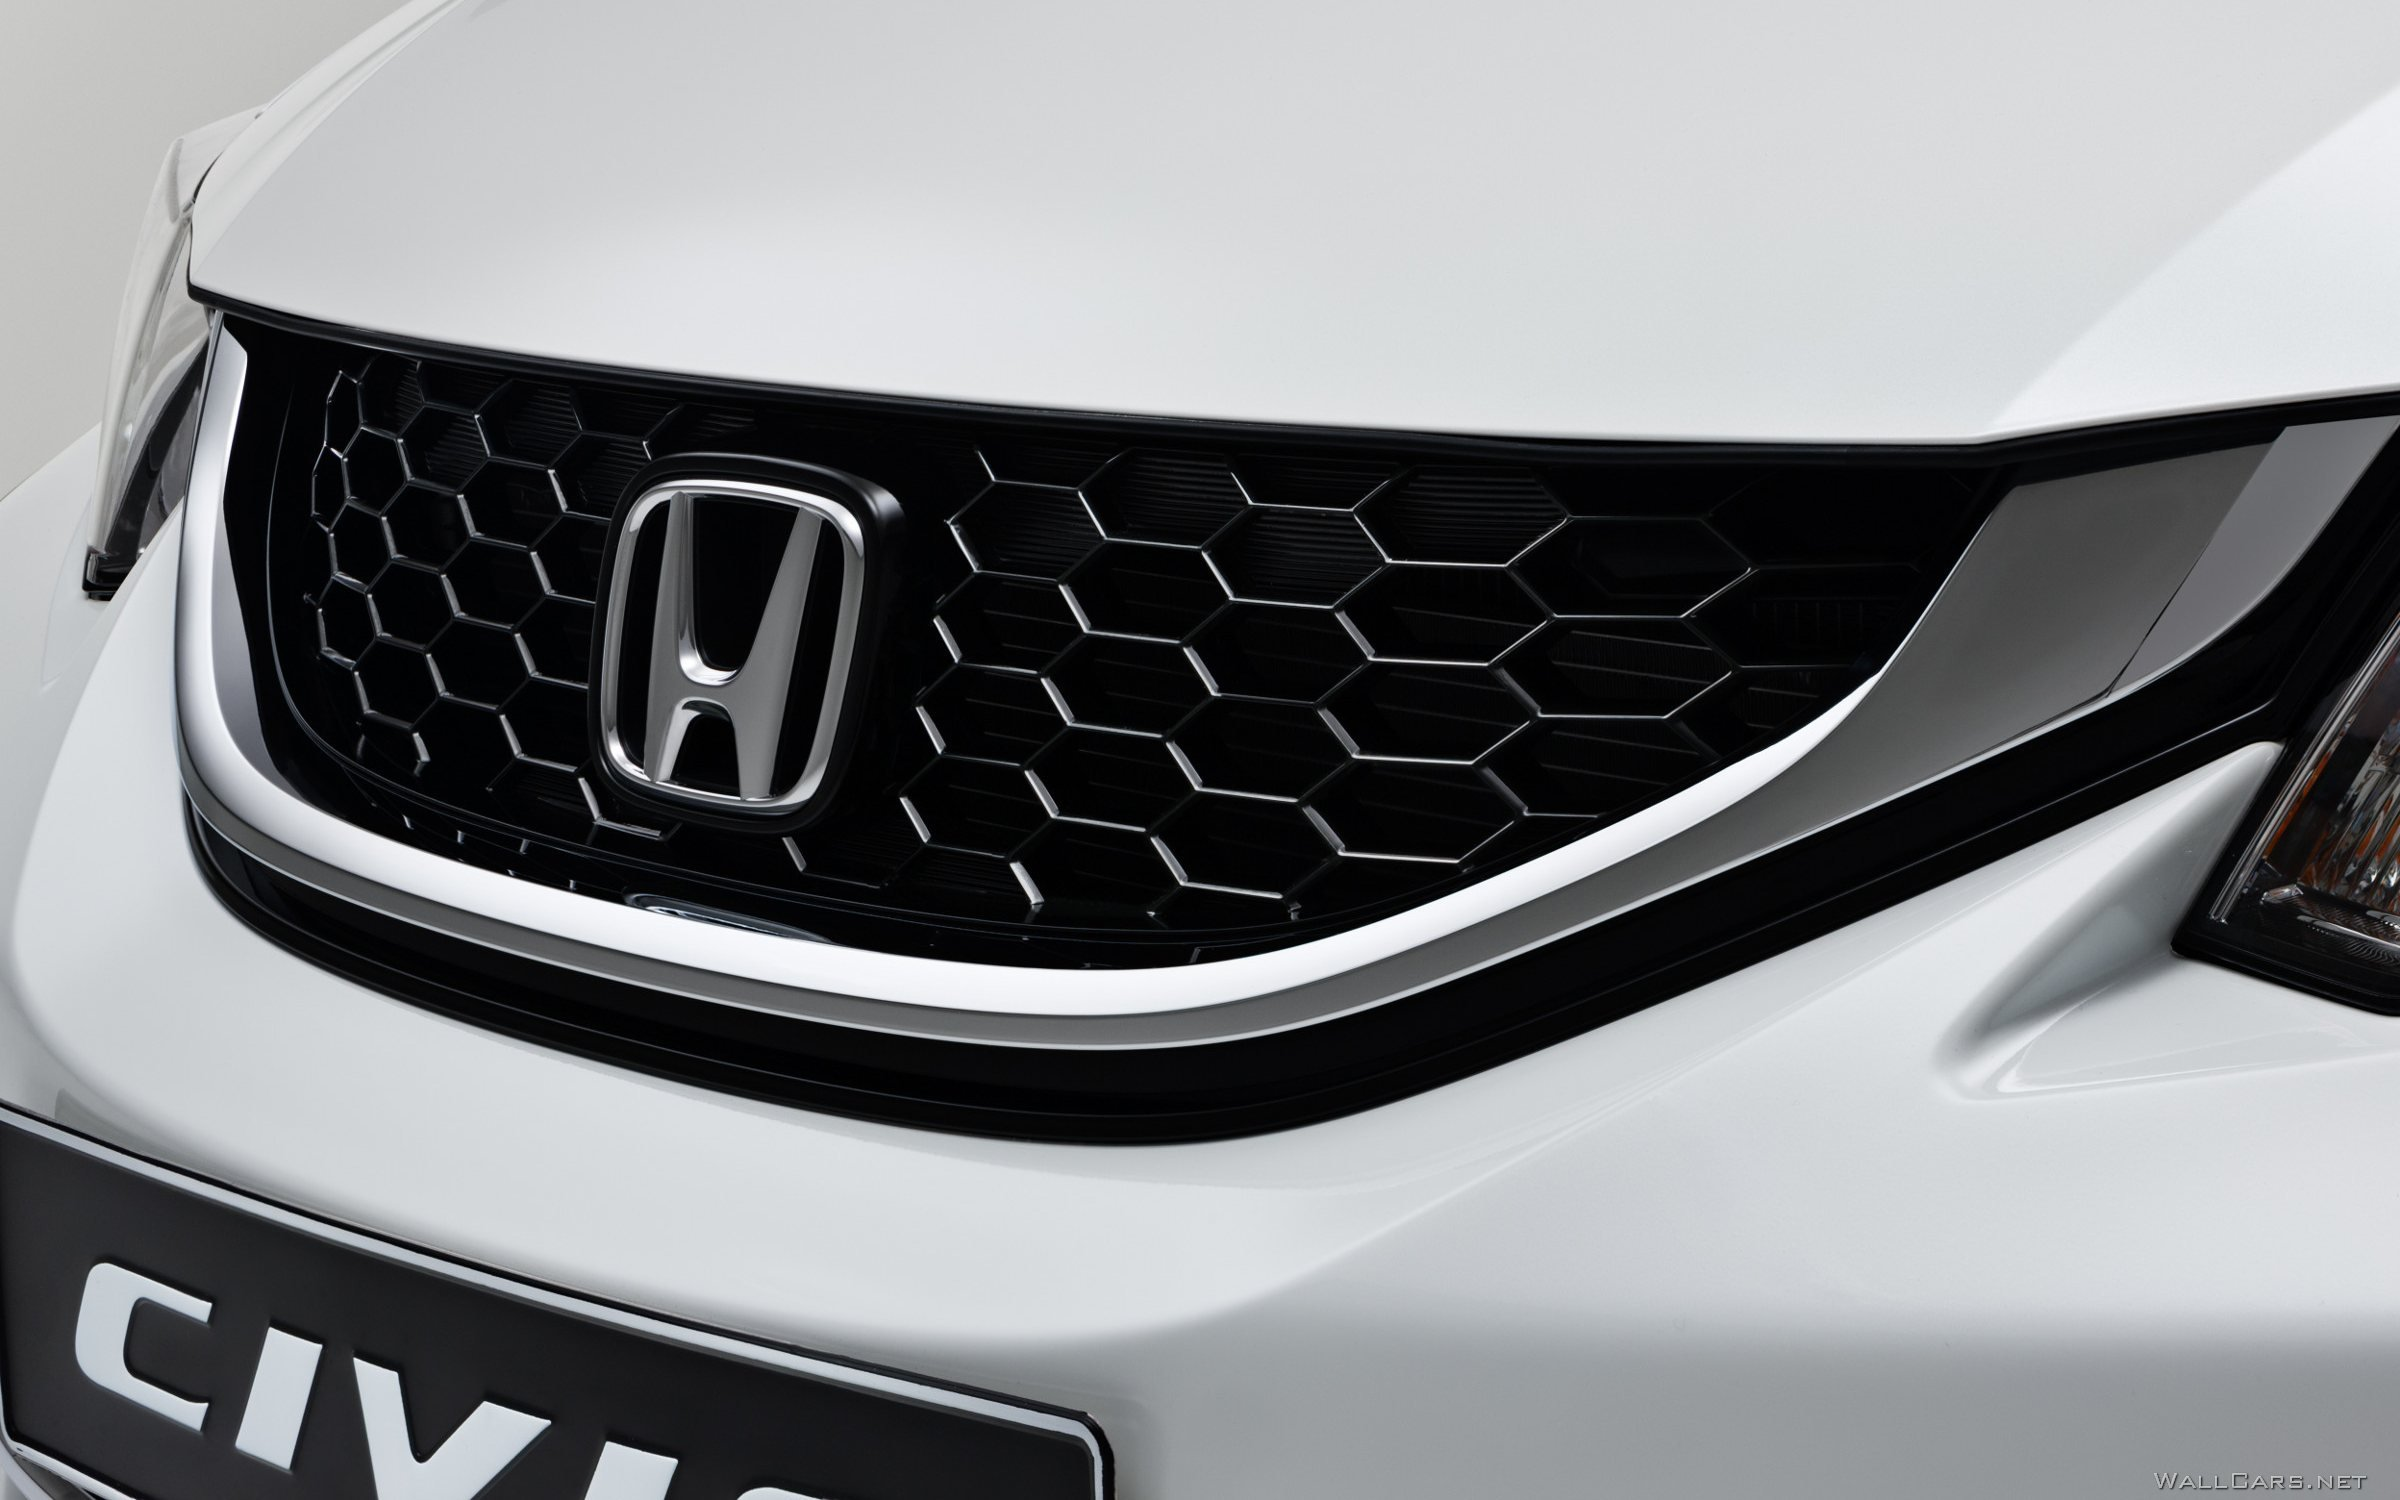 Черная решетка радиатора Honda Civic, Хонда Цивик, значок